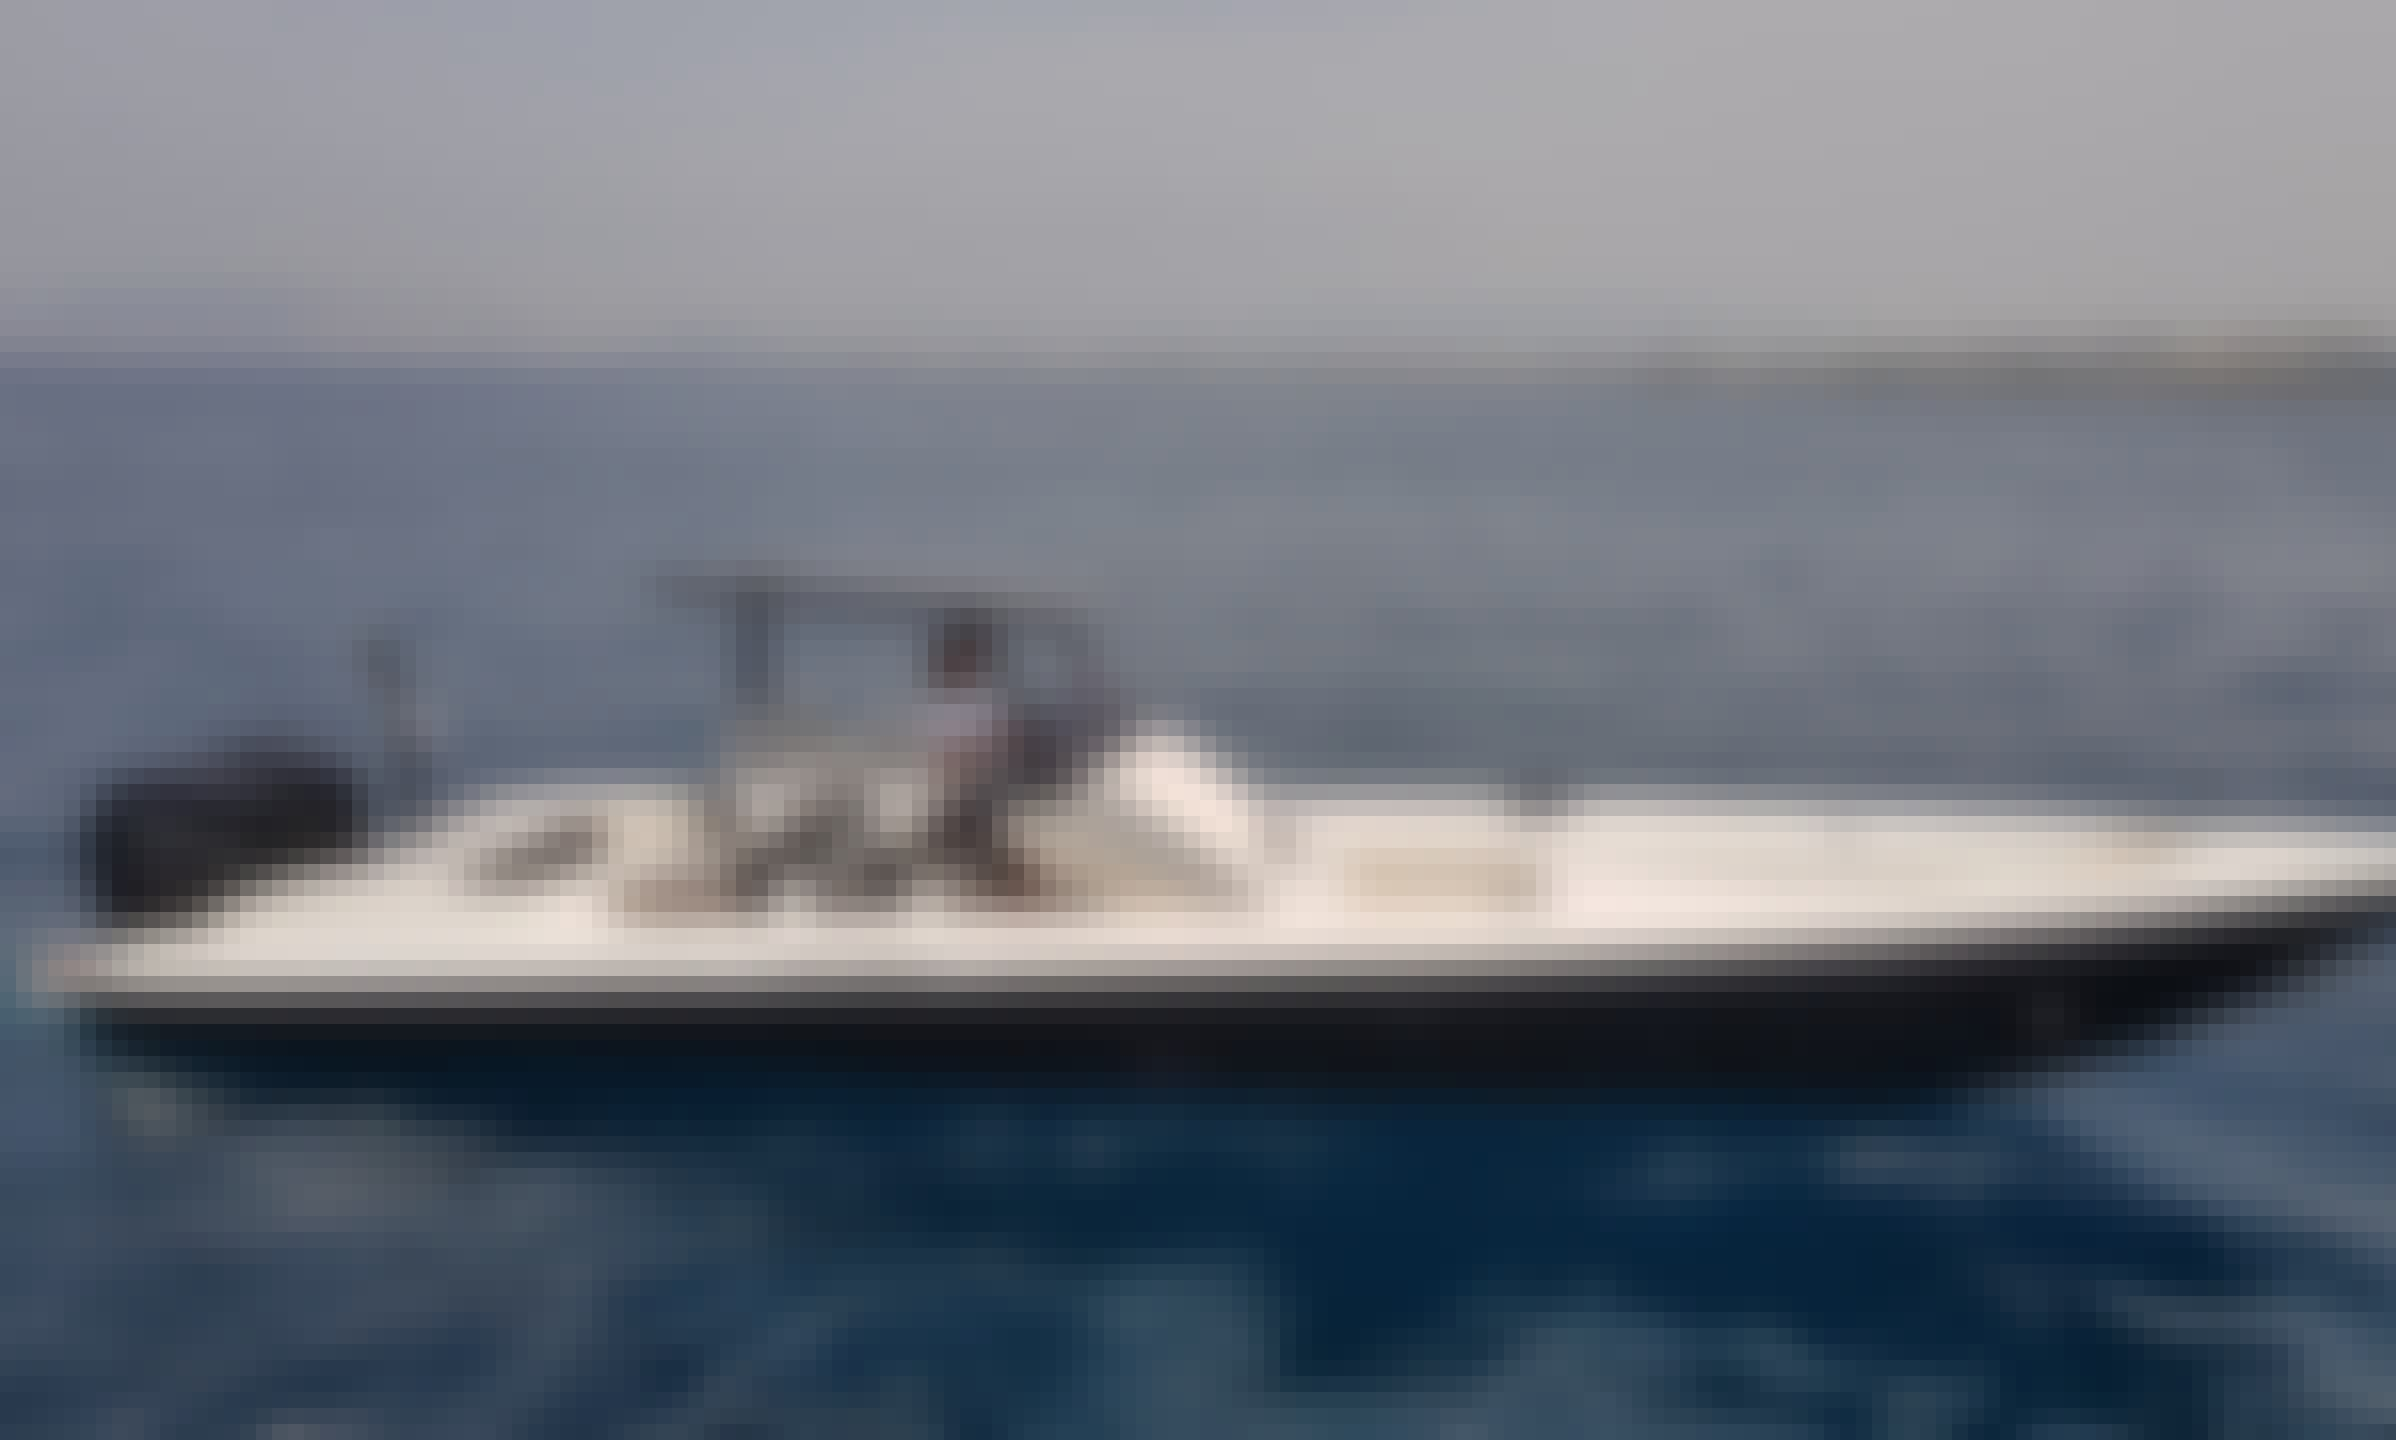 Book this Technohull Sea DNA 999 G5 RIB – 2x350 Hp Verado Outboard in Elliniko, Greece